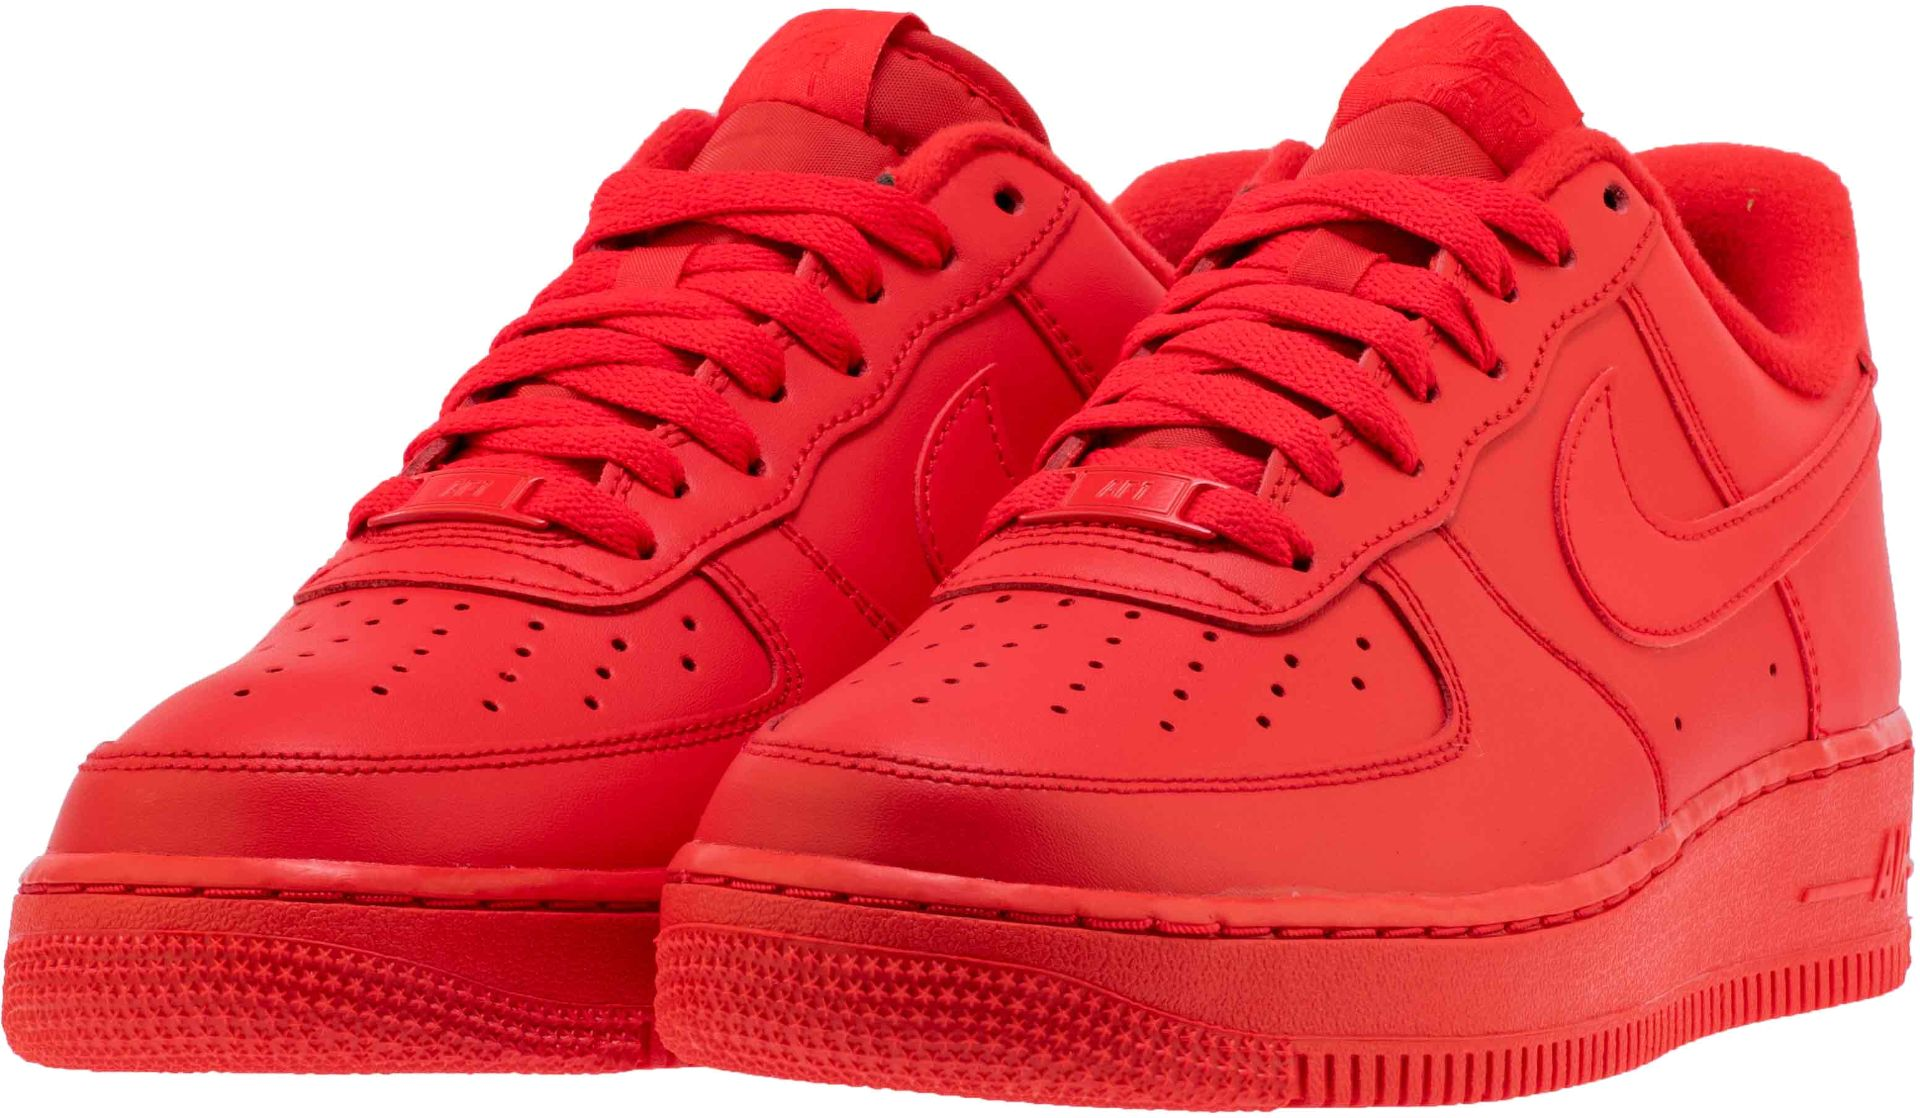 nike-air-force-1-low-red-red-cw6999-600_04